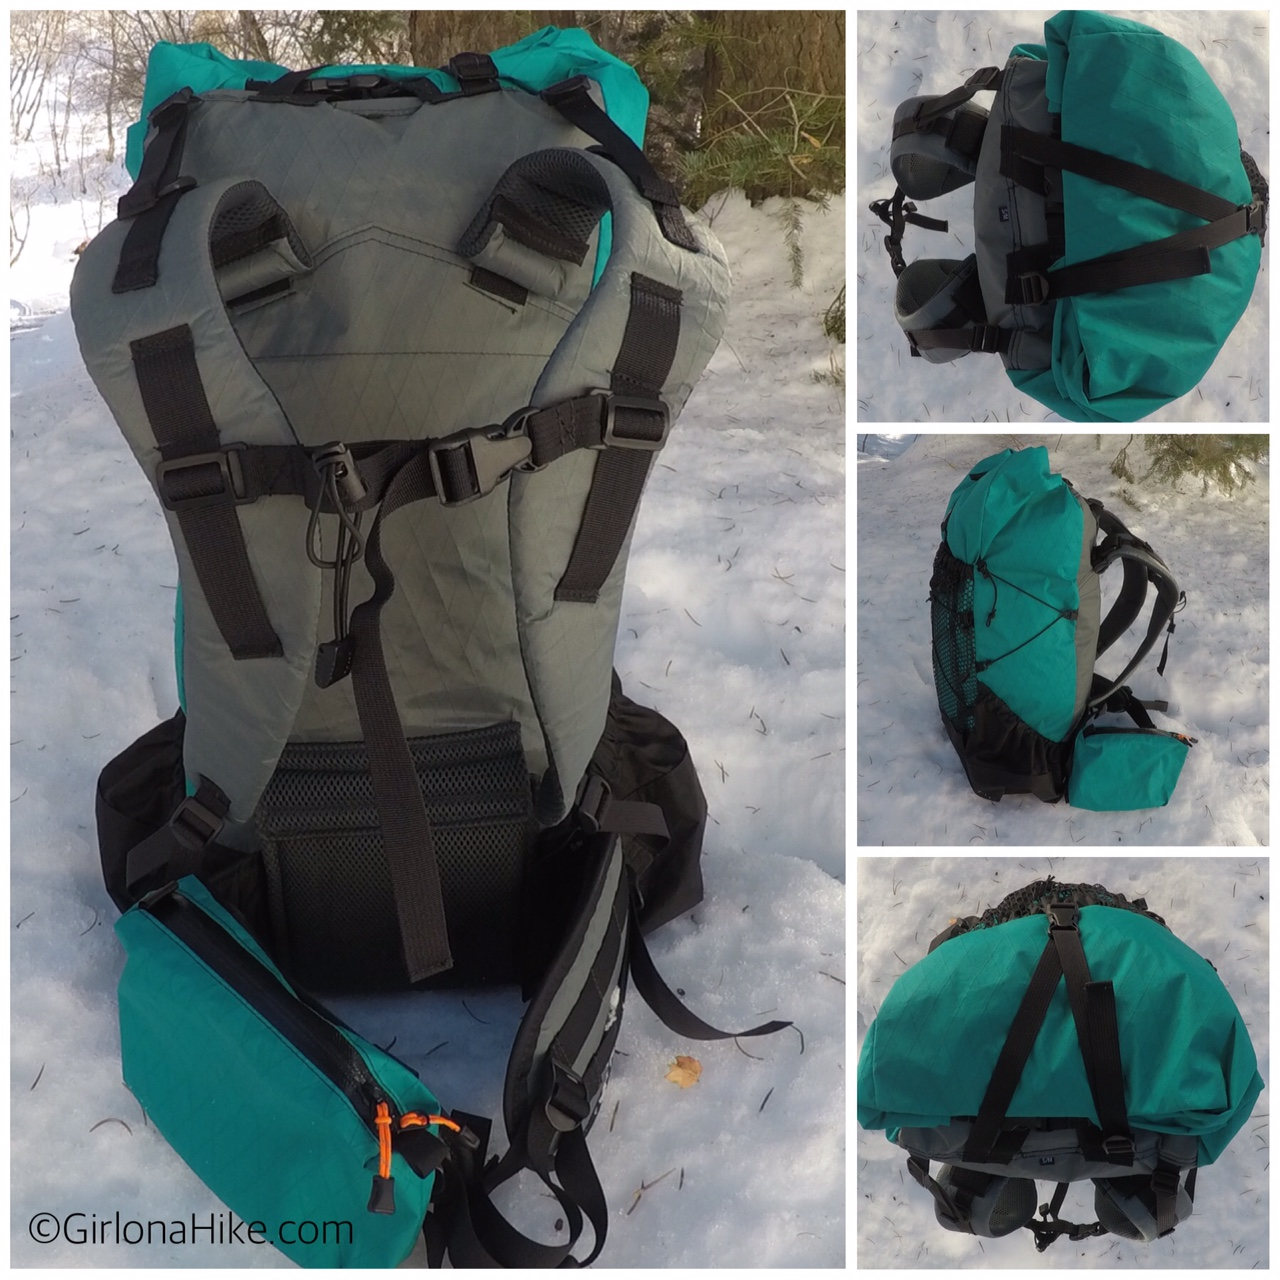 Waymark Gear Co. LITE 50 Liter Pack, Ultralight Thru Packs, Ultralight Backpacking, Ultralight Camping, Best UL Packs